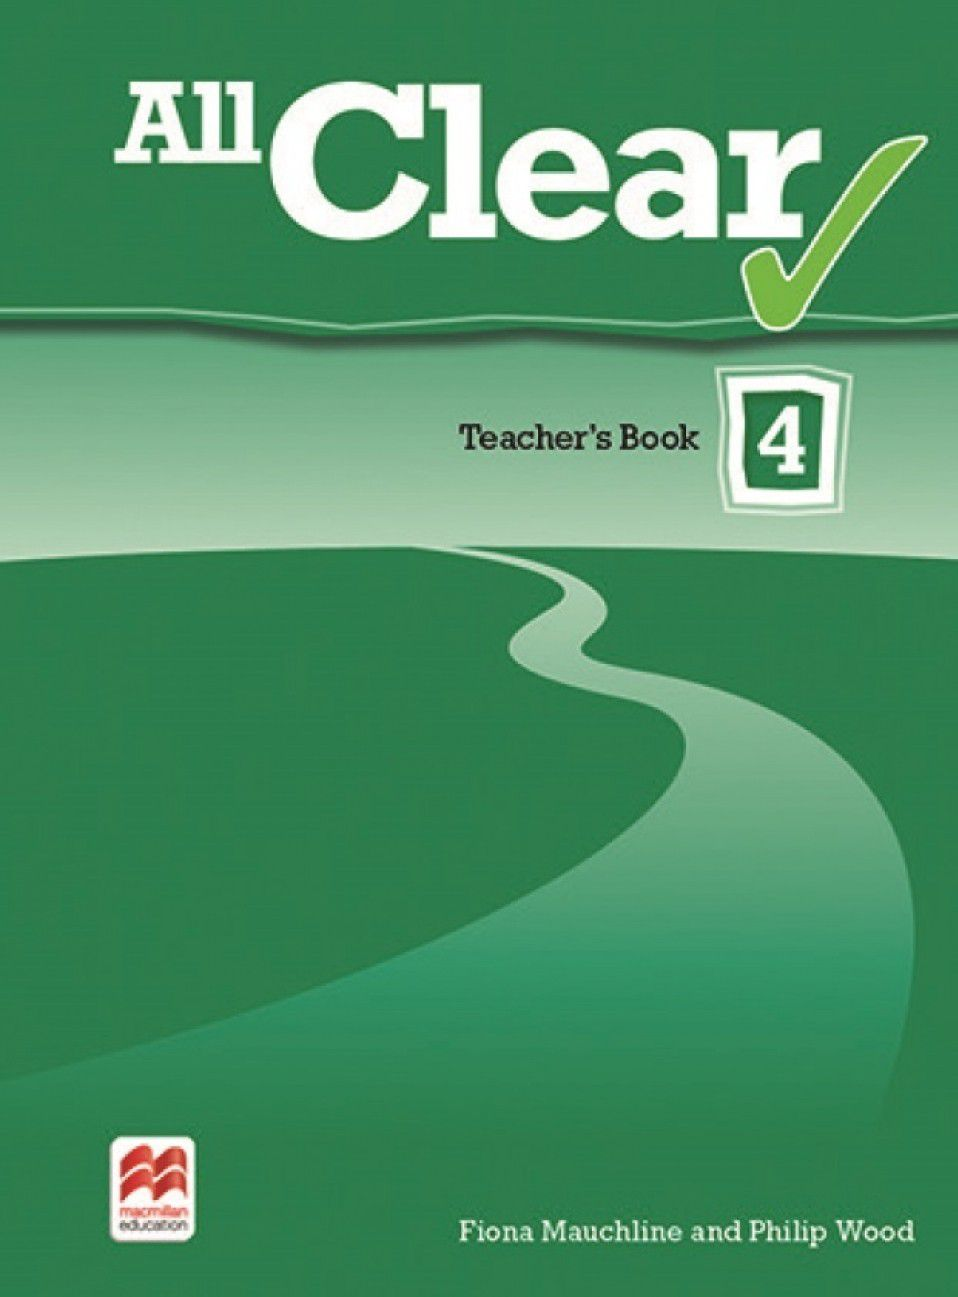 ALL CLEAR TEACHERS BOOK PACK-4